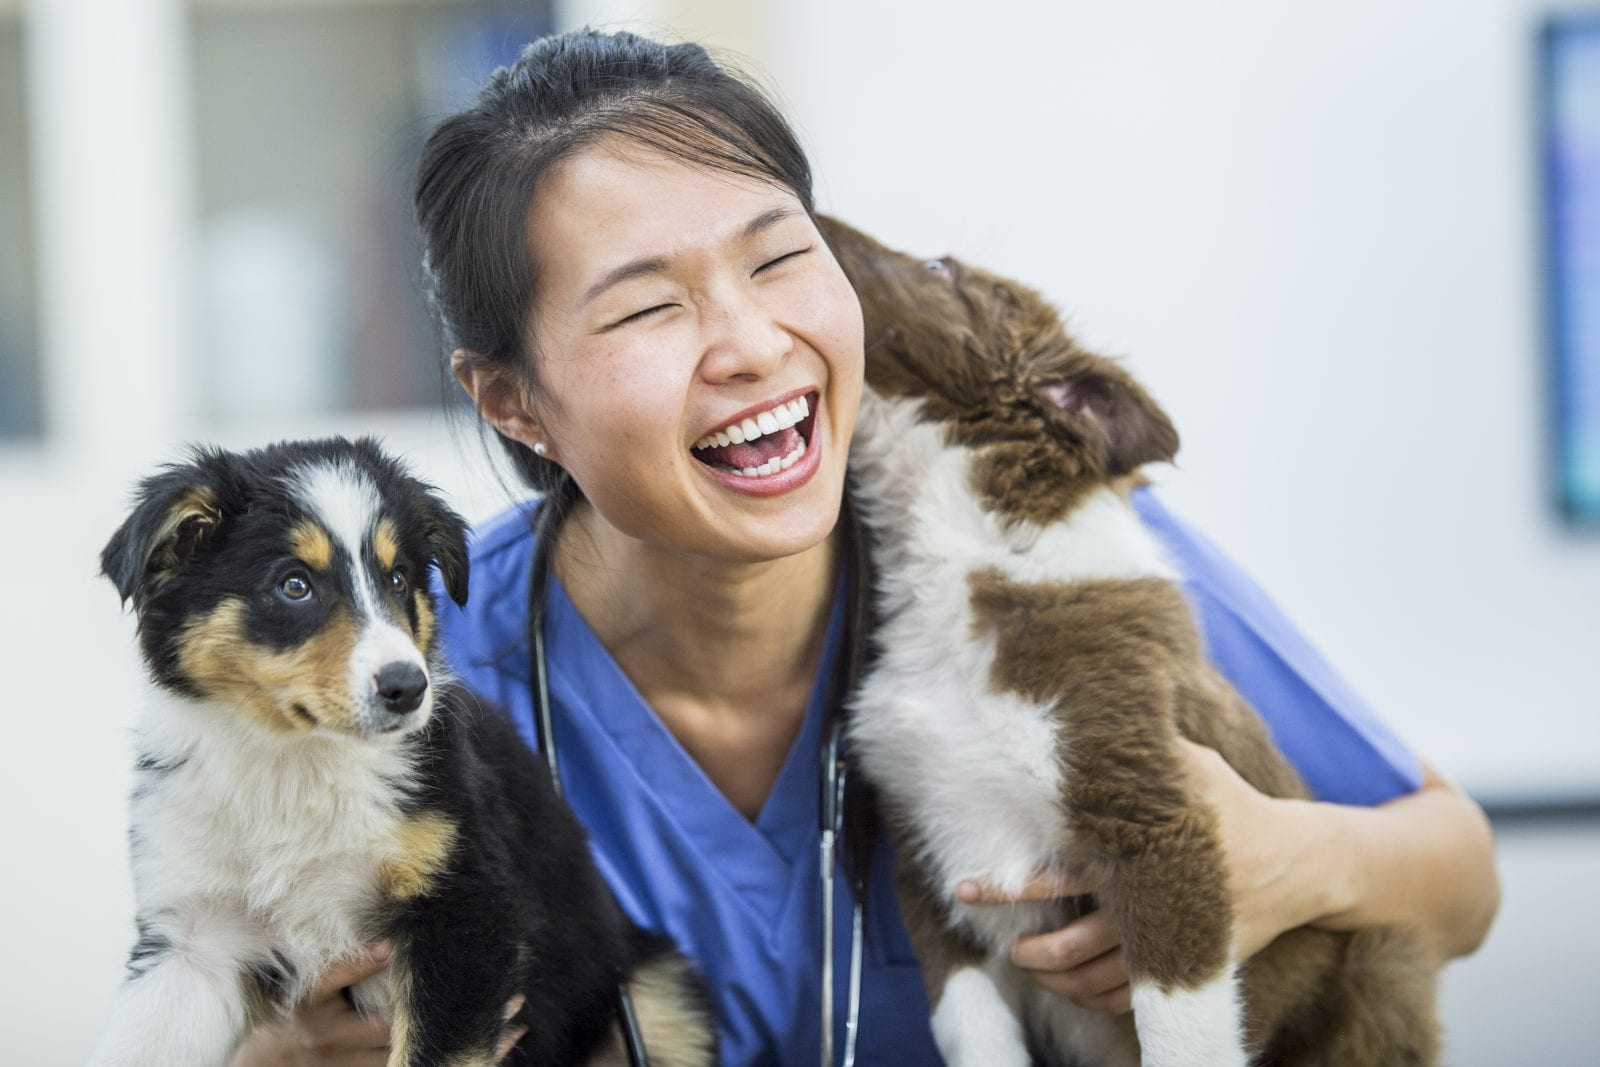 Female vet playing with puppies laughing